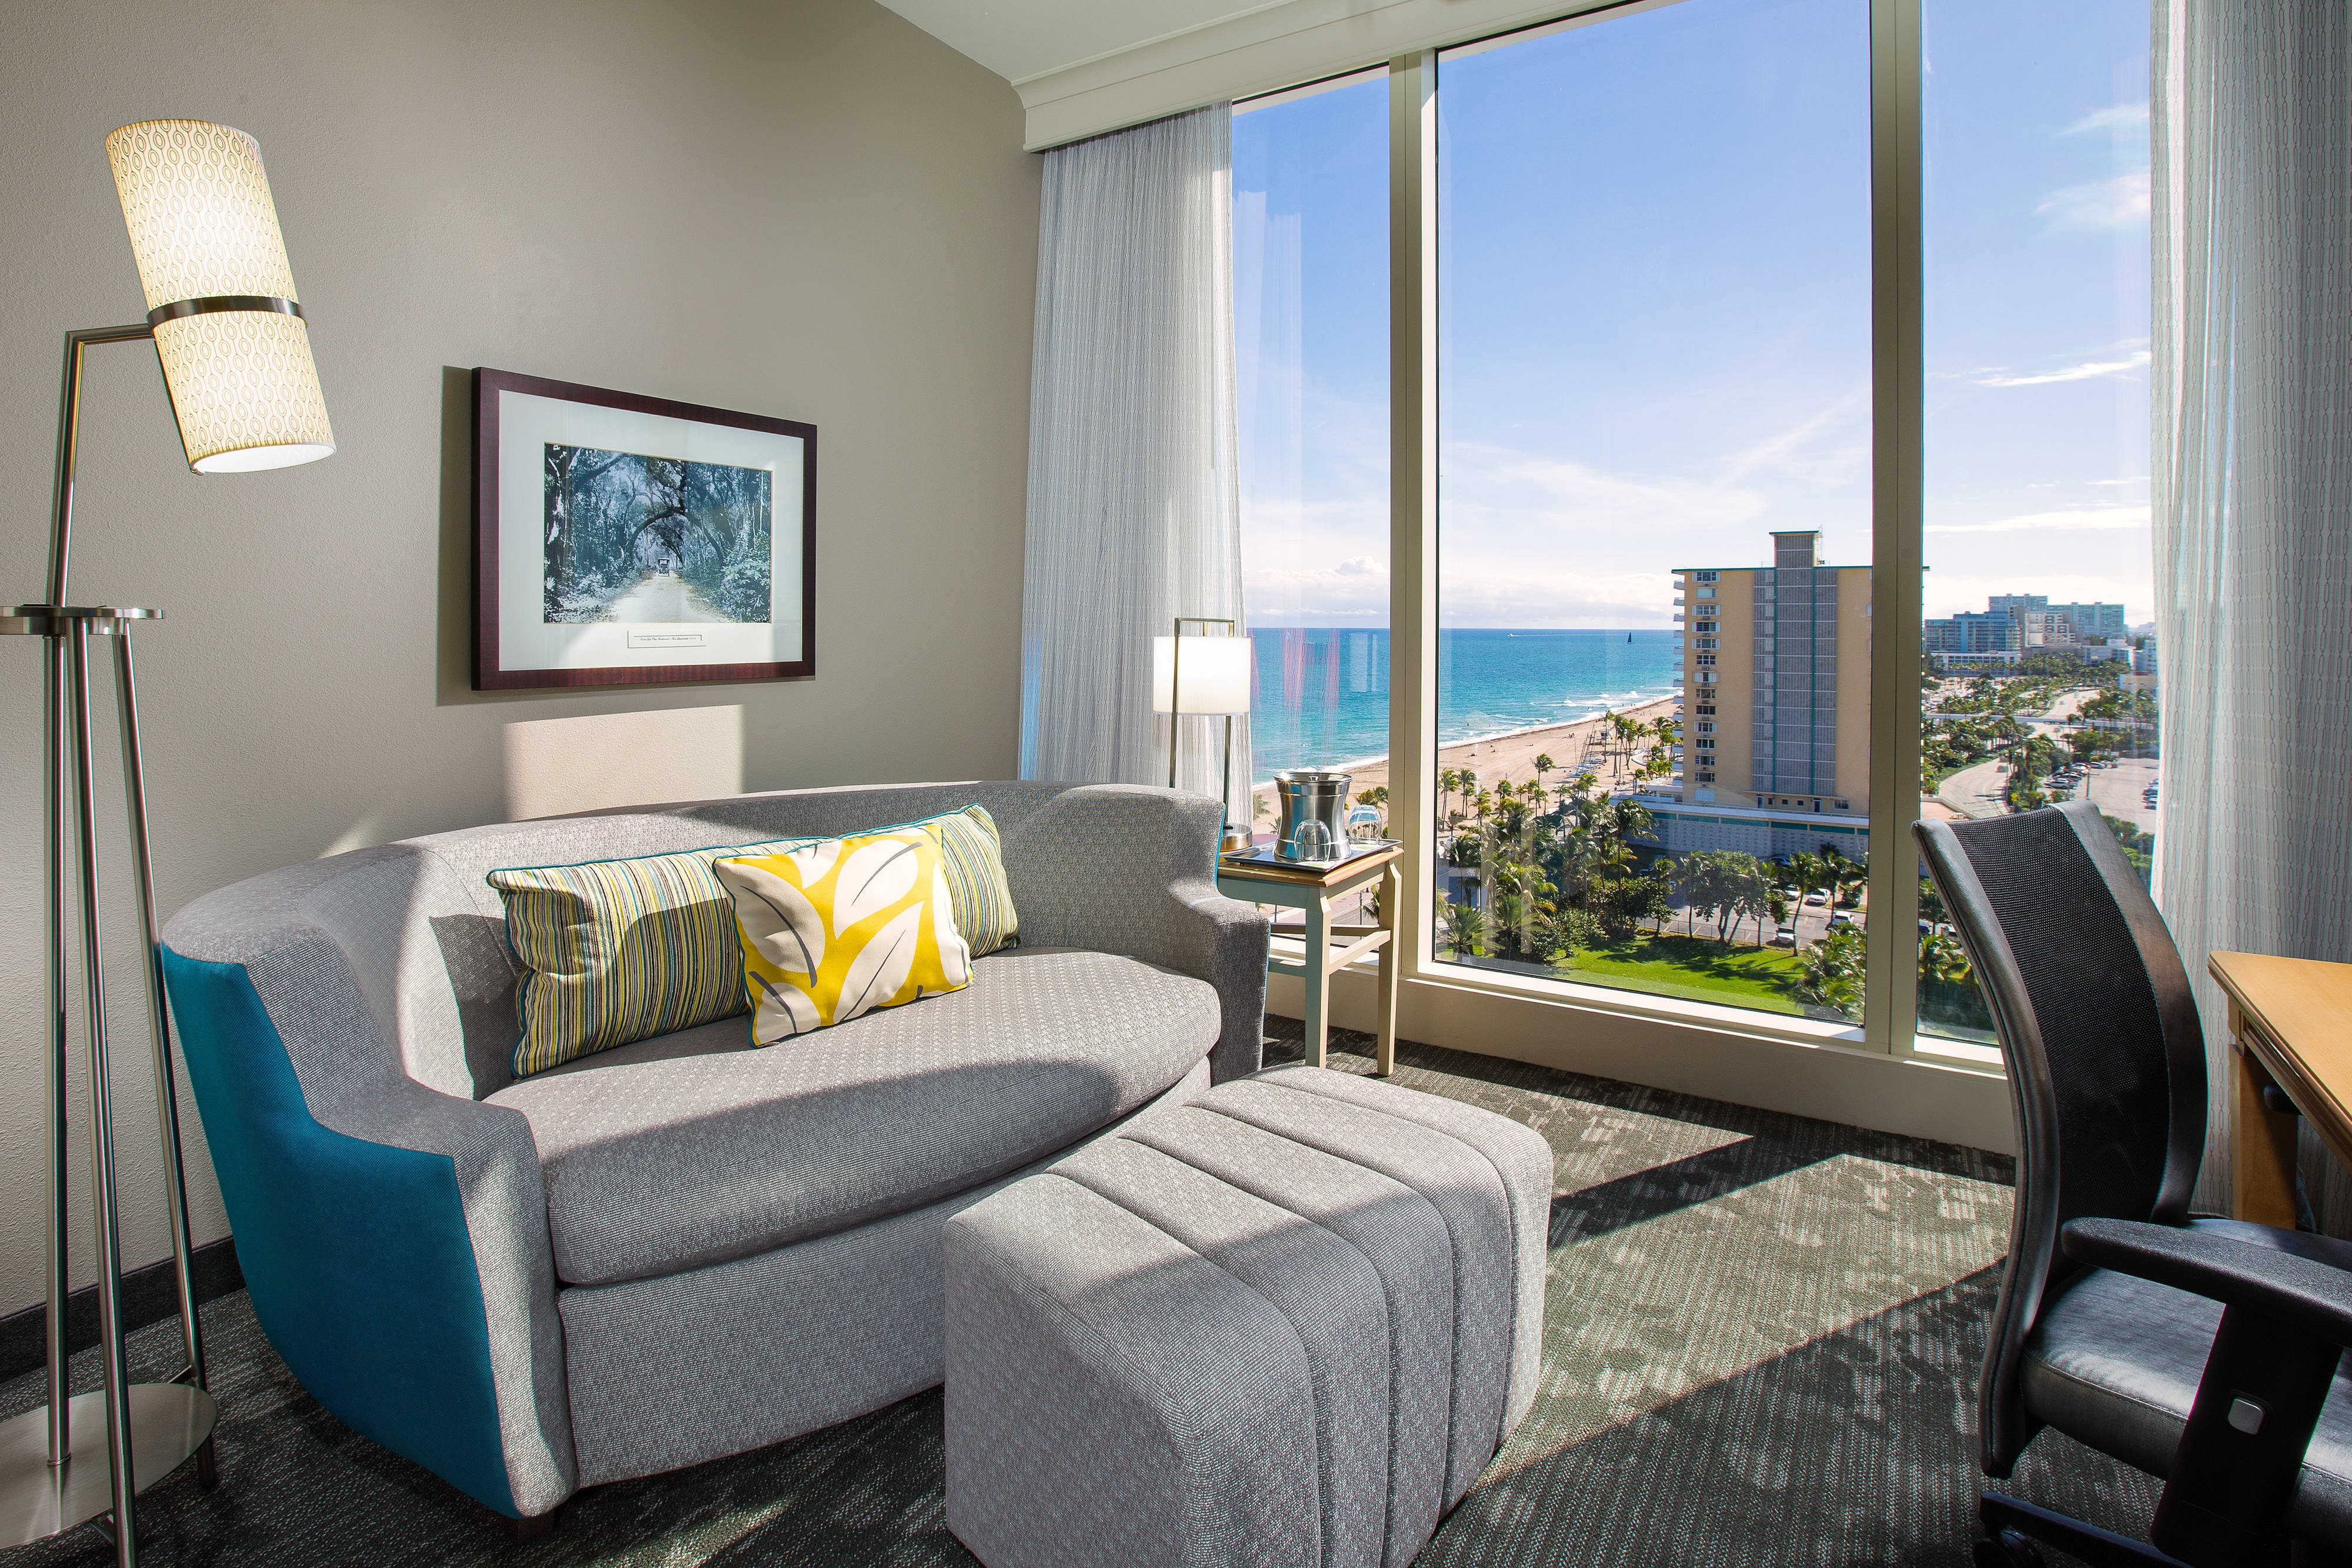 Courtyard fort lauderdale beach accommodations rooms and 2 bedroom suites in fort lauderdale